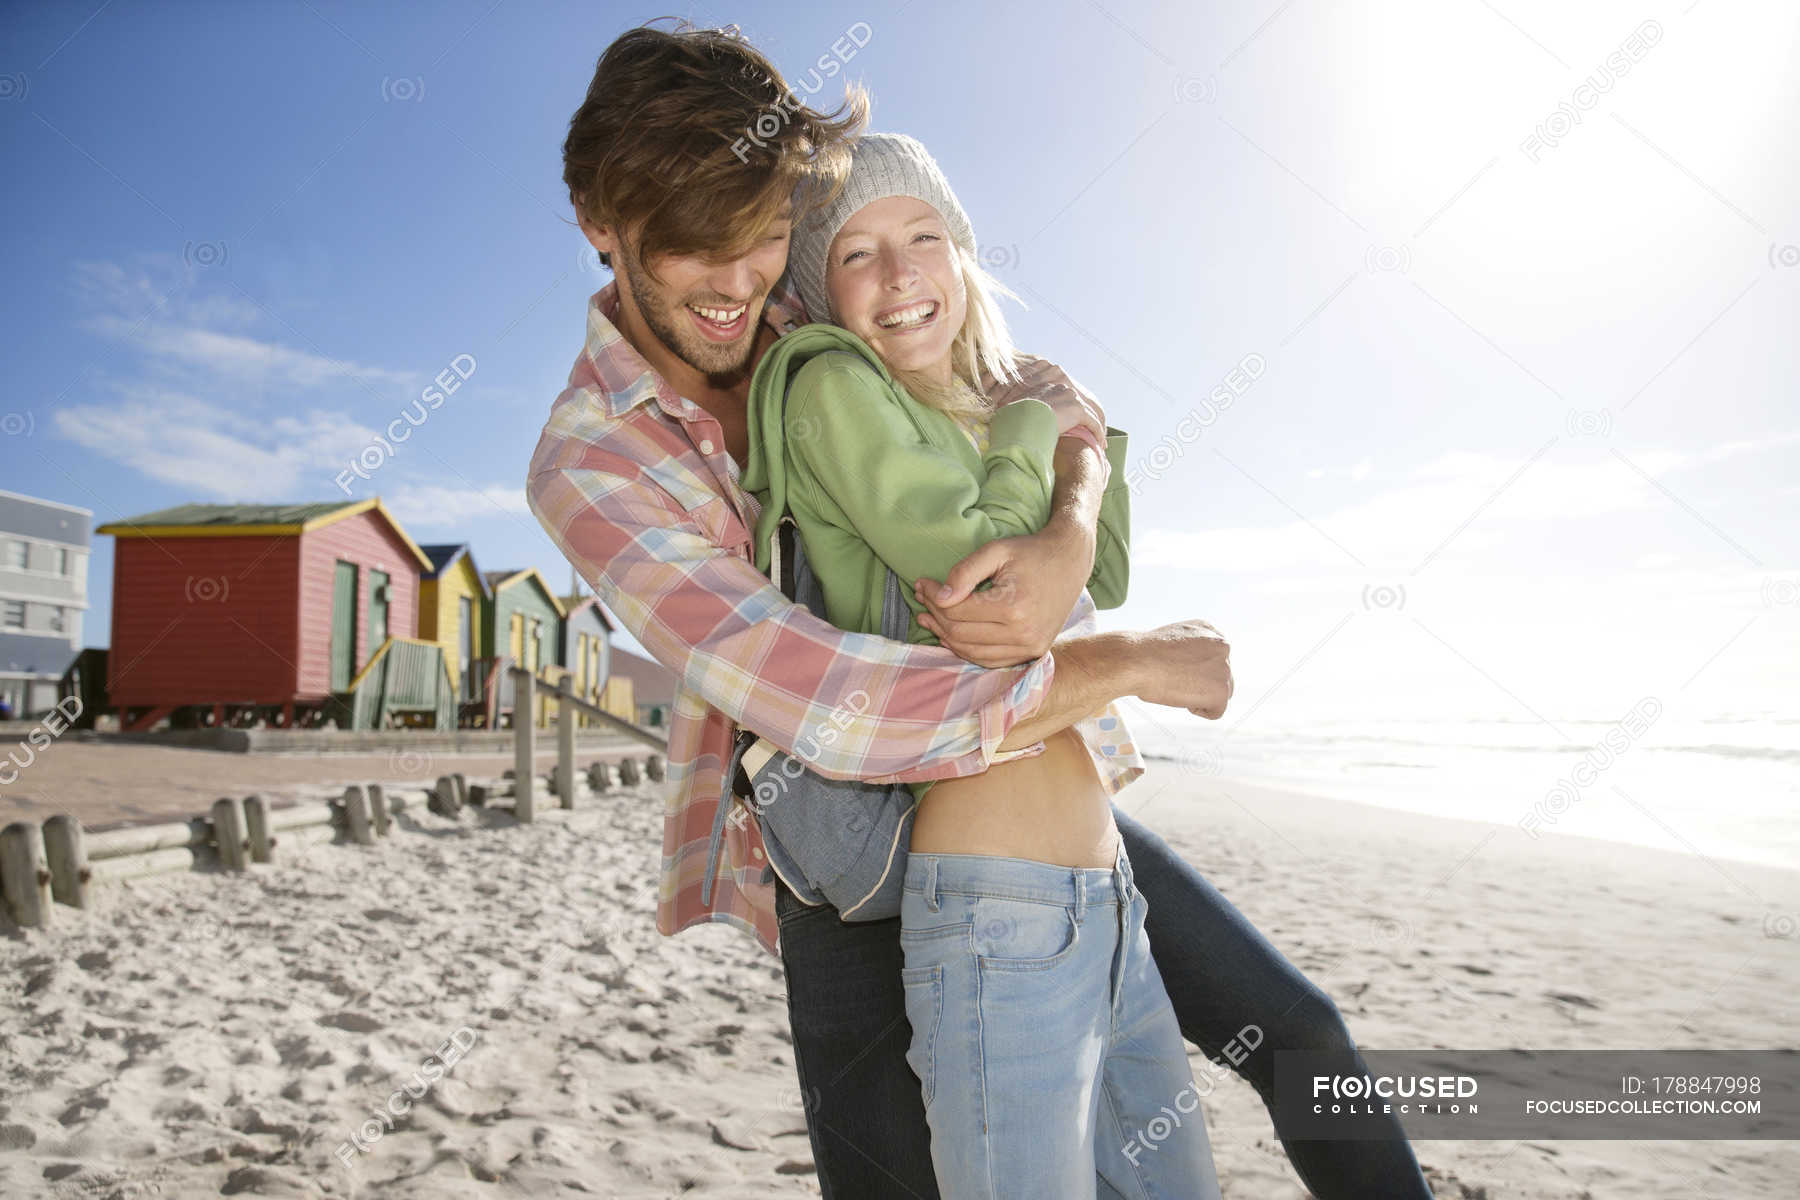 Playful young couple on beach — Stock Photo | #178847998